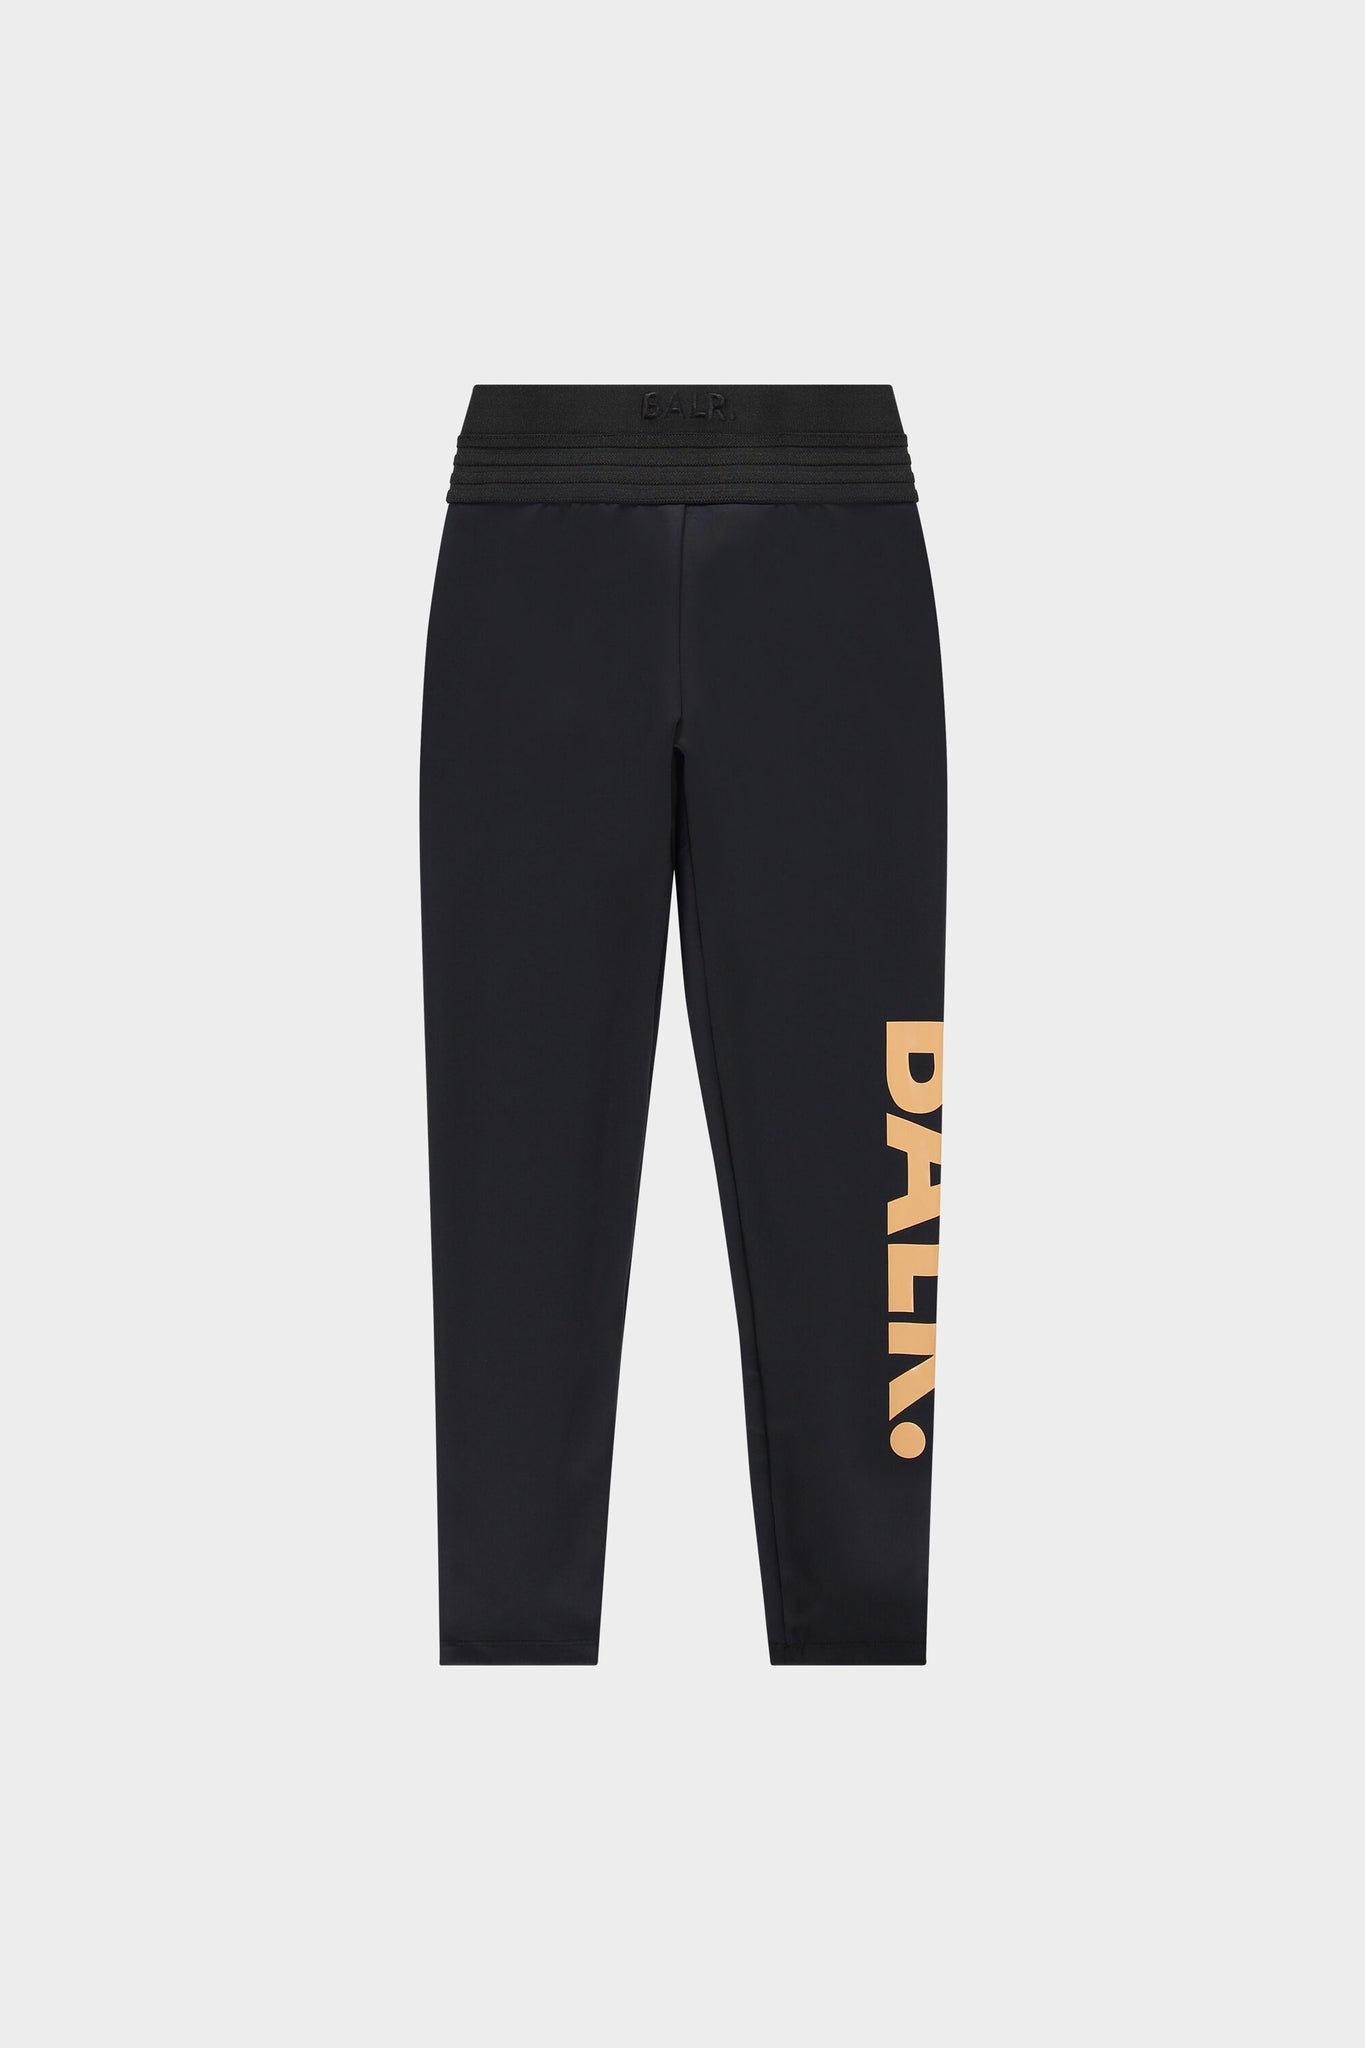 BALR. High Waisted Legging Brand Women Jet Black